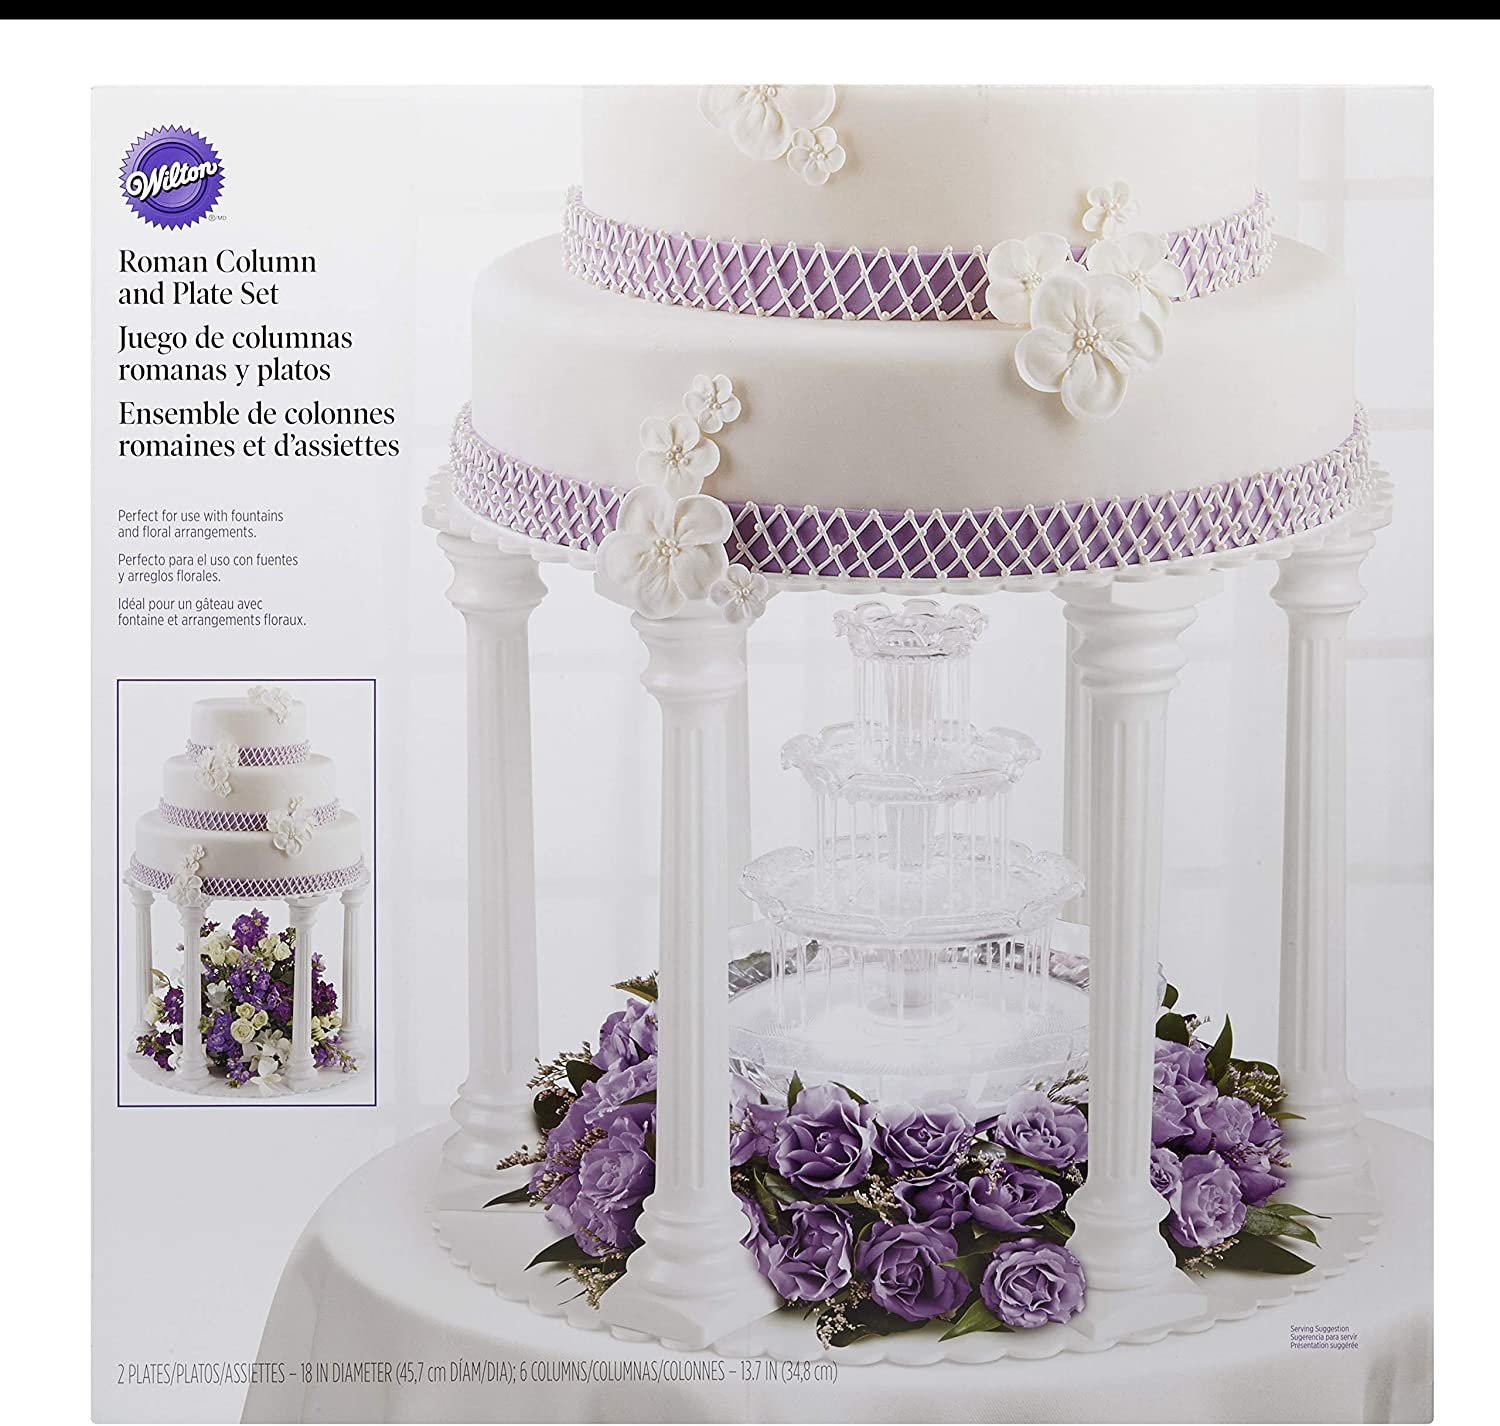 Wilton Roman Column Tiered Wedding Cake Stand, a Beautiful, Elegant Tiered Cake Stand for Weddings and Special Occasions, 8-Piece